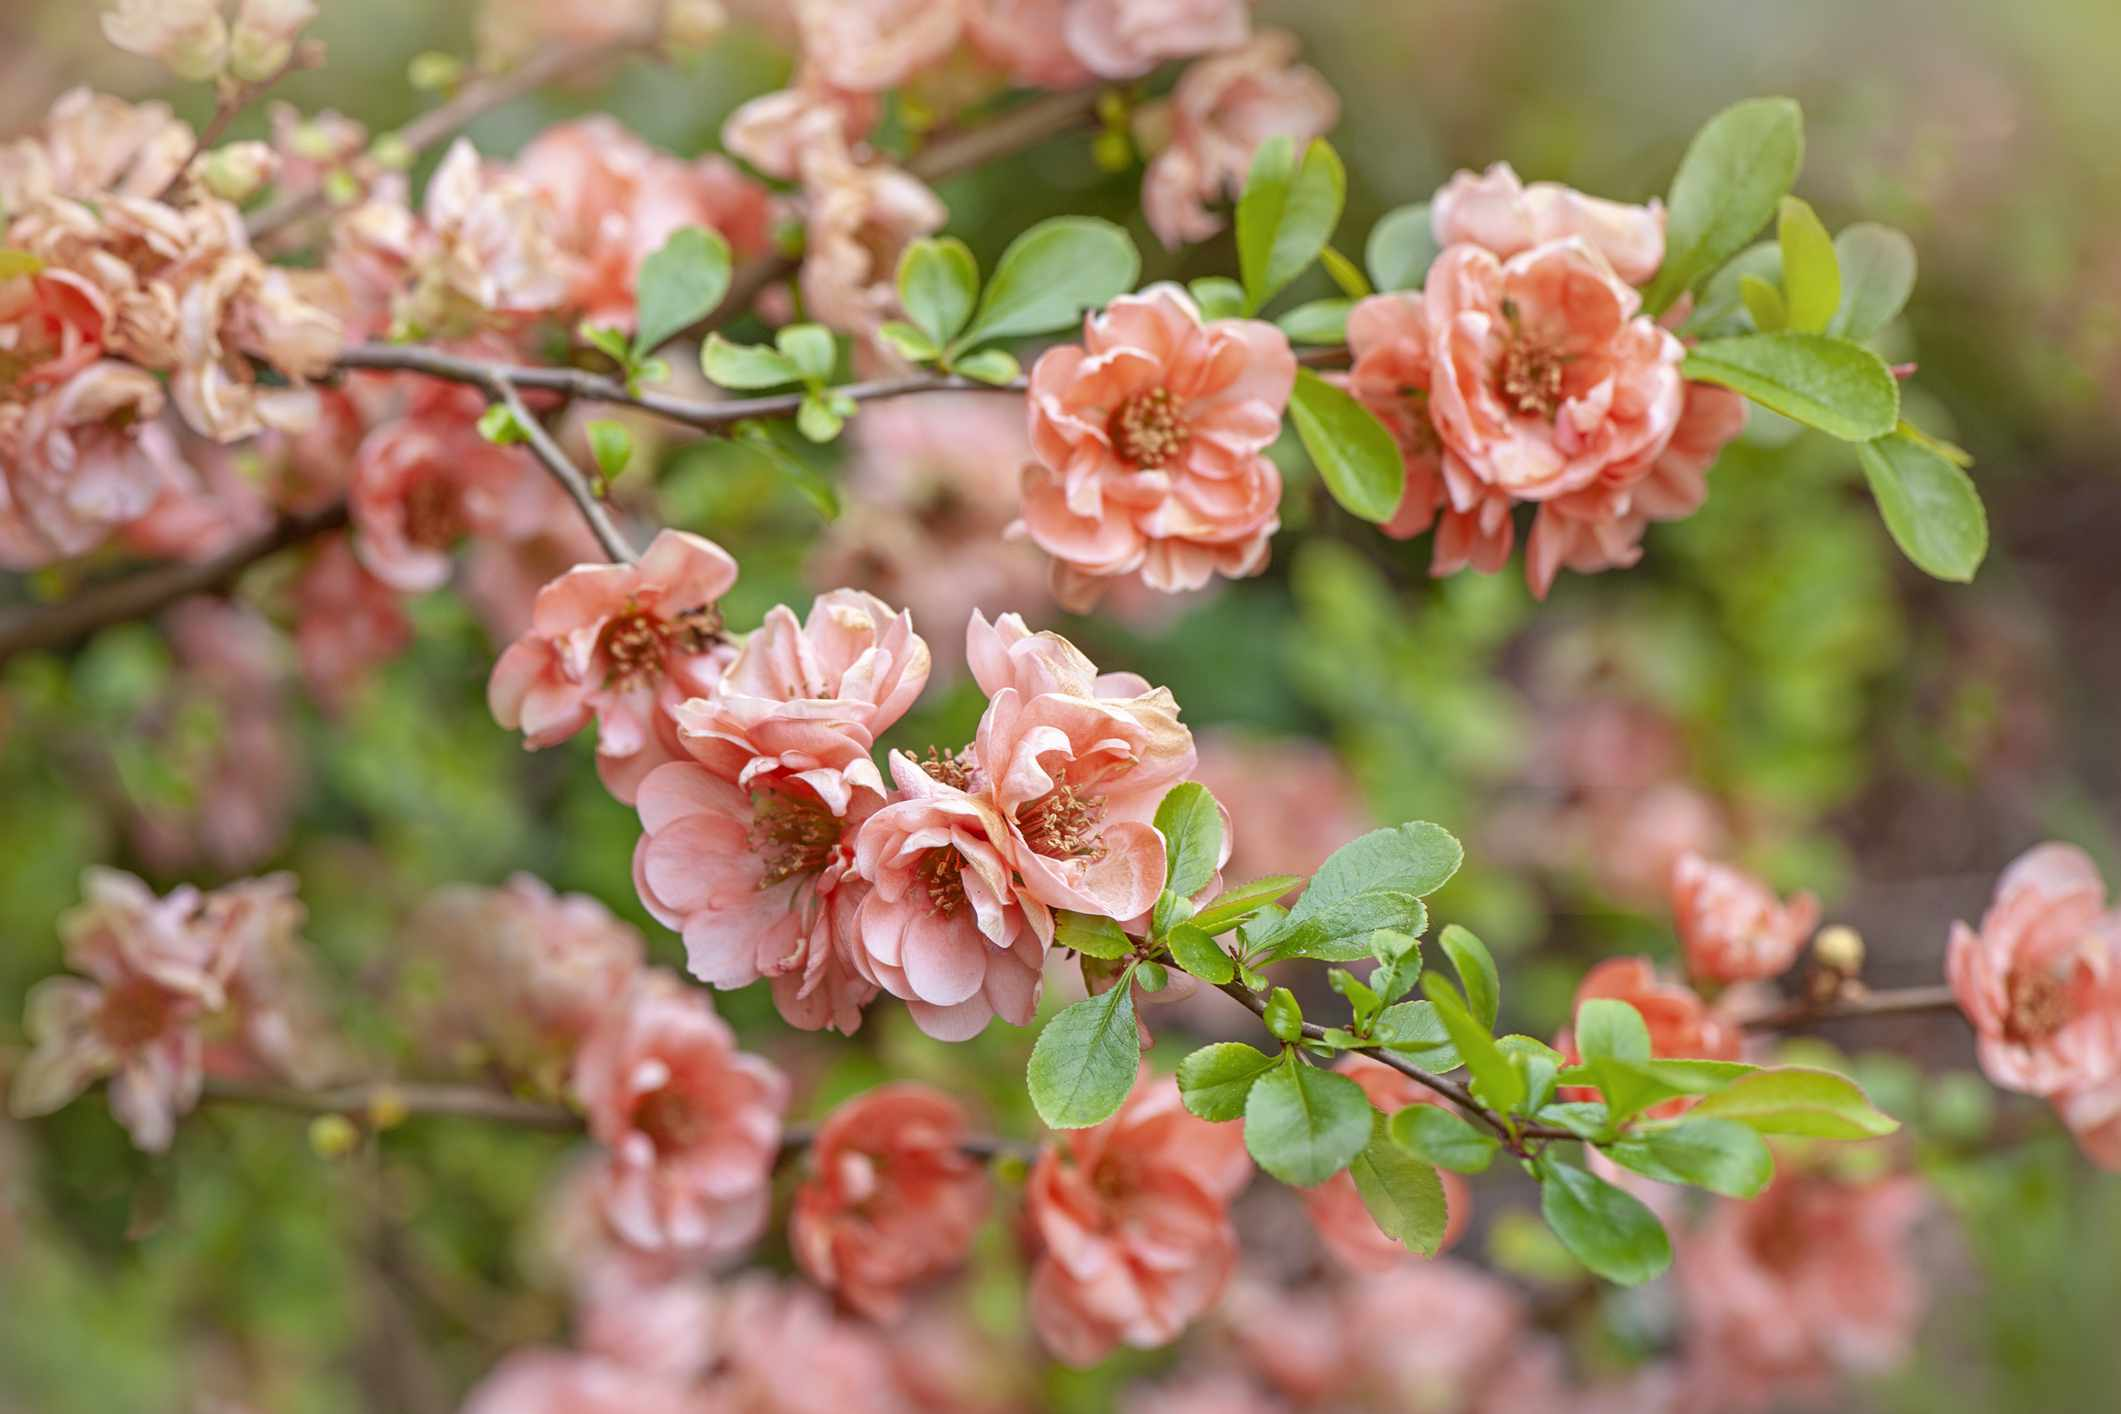 flowering Japanese quince flowers